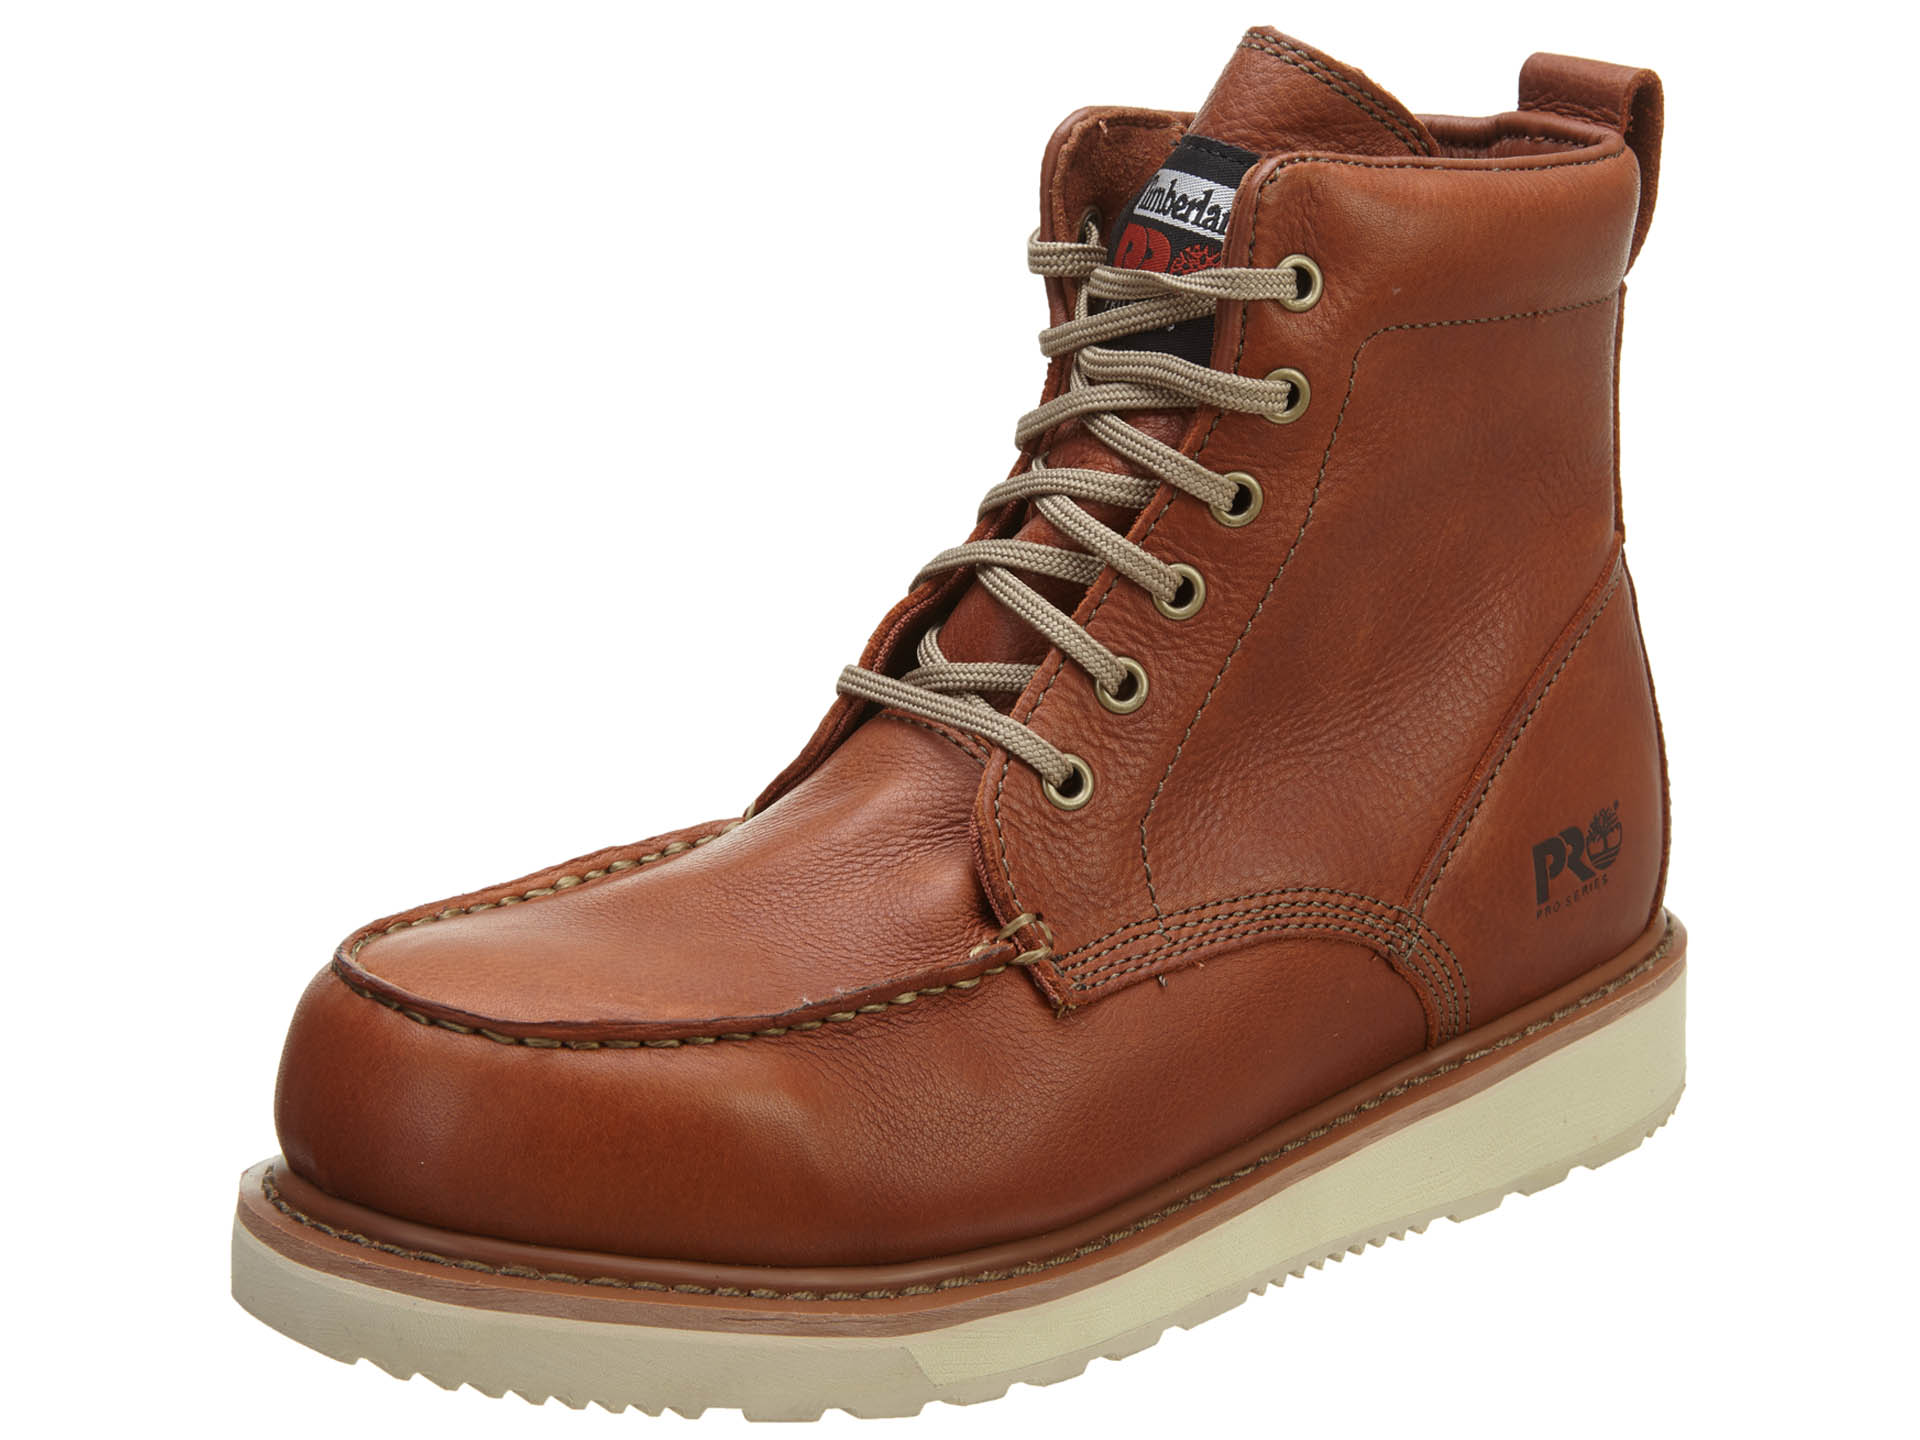 """""""Timberland Wedge 6 Mens Style : 53009"""""""""""" by Timberland"""